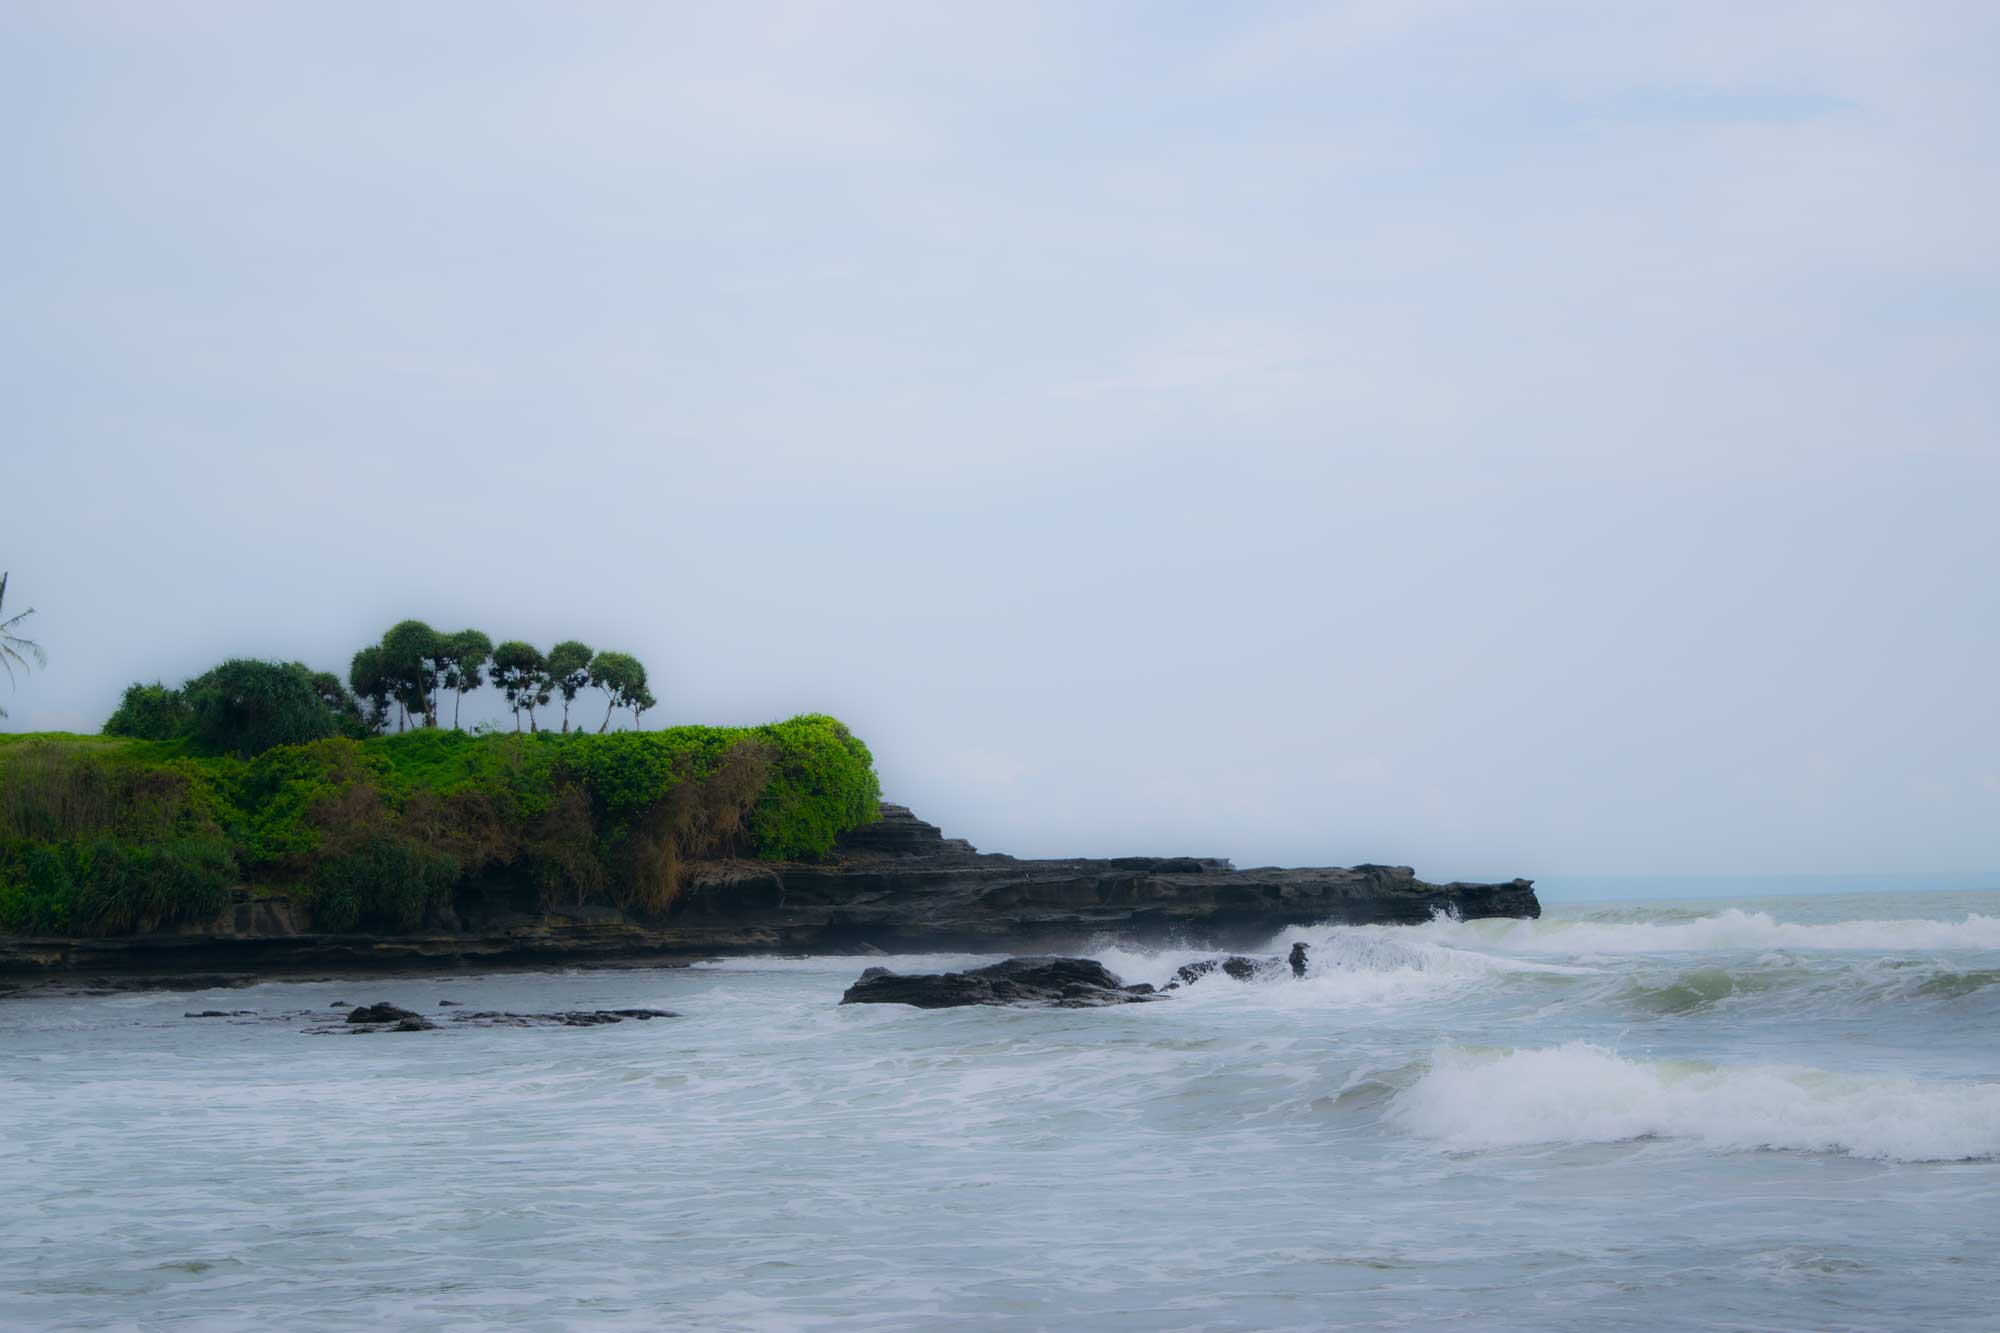 Off the path - The Pura Tanah Lot Bali - Travel Blog - Scew Them All